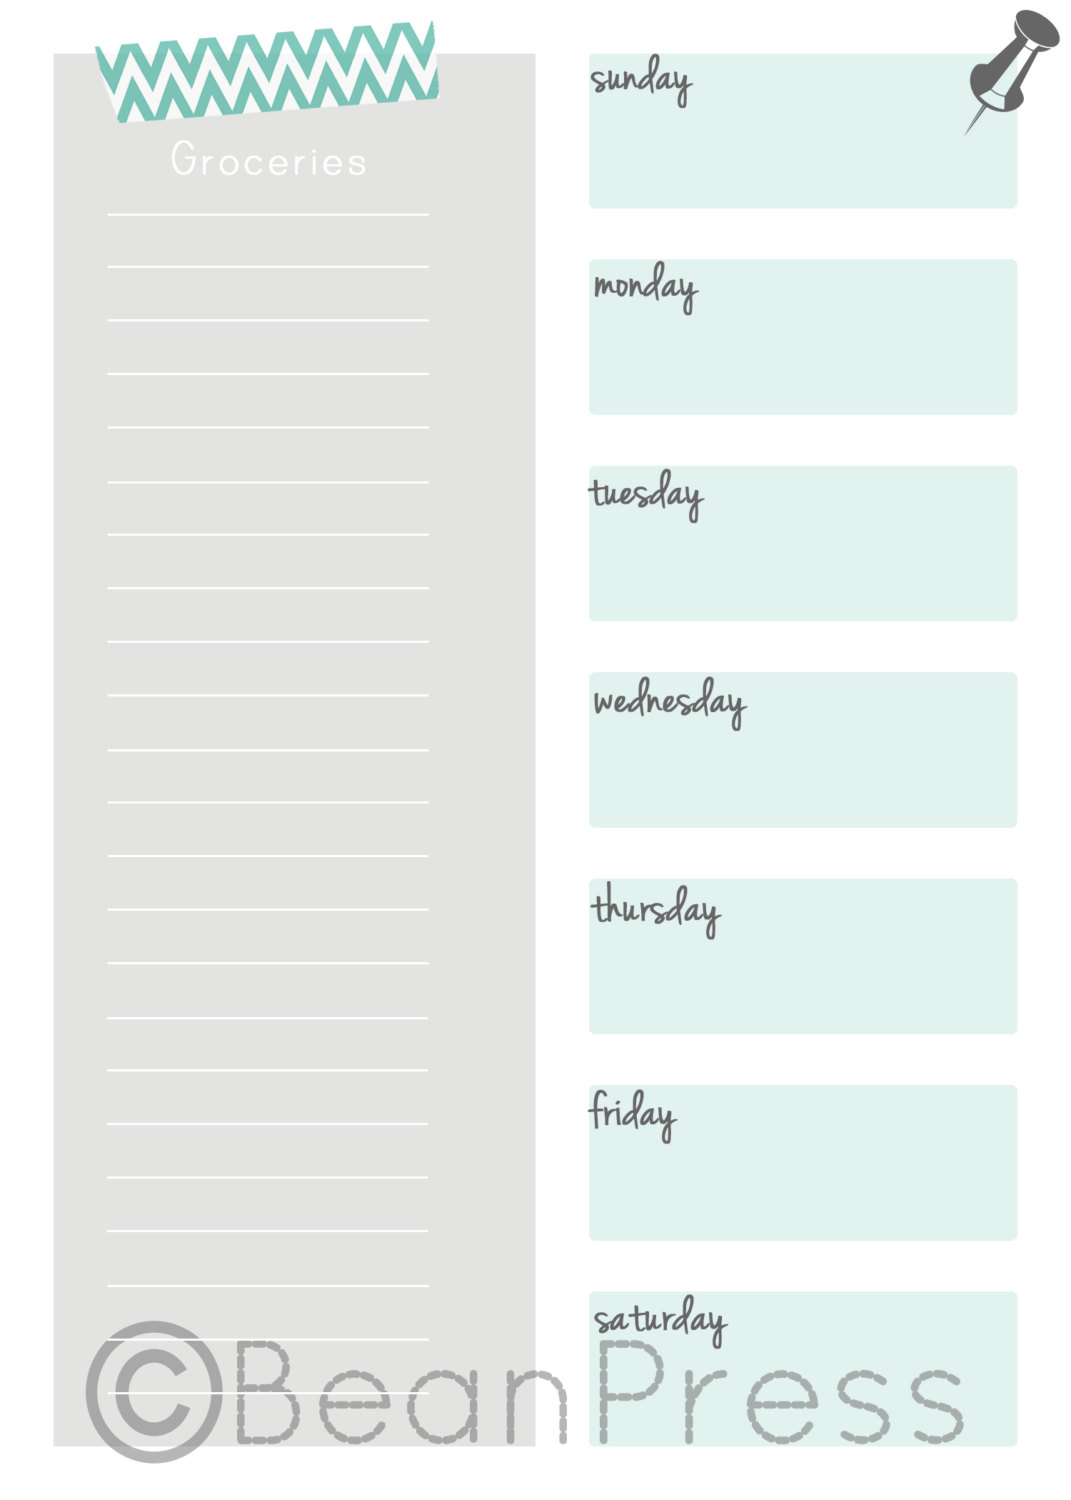 BeanPress Grocery List and Meal Planner